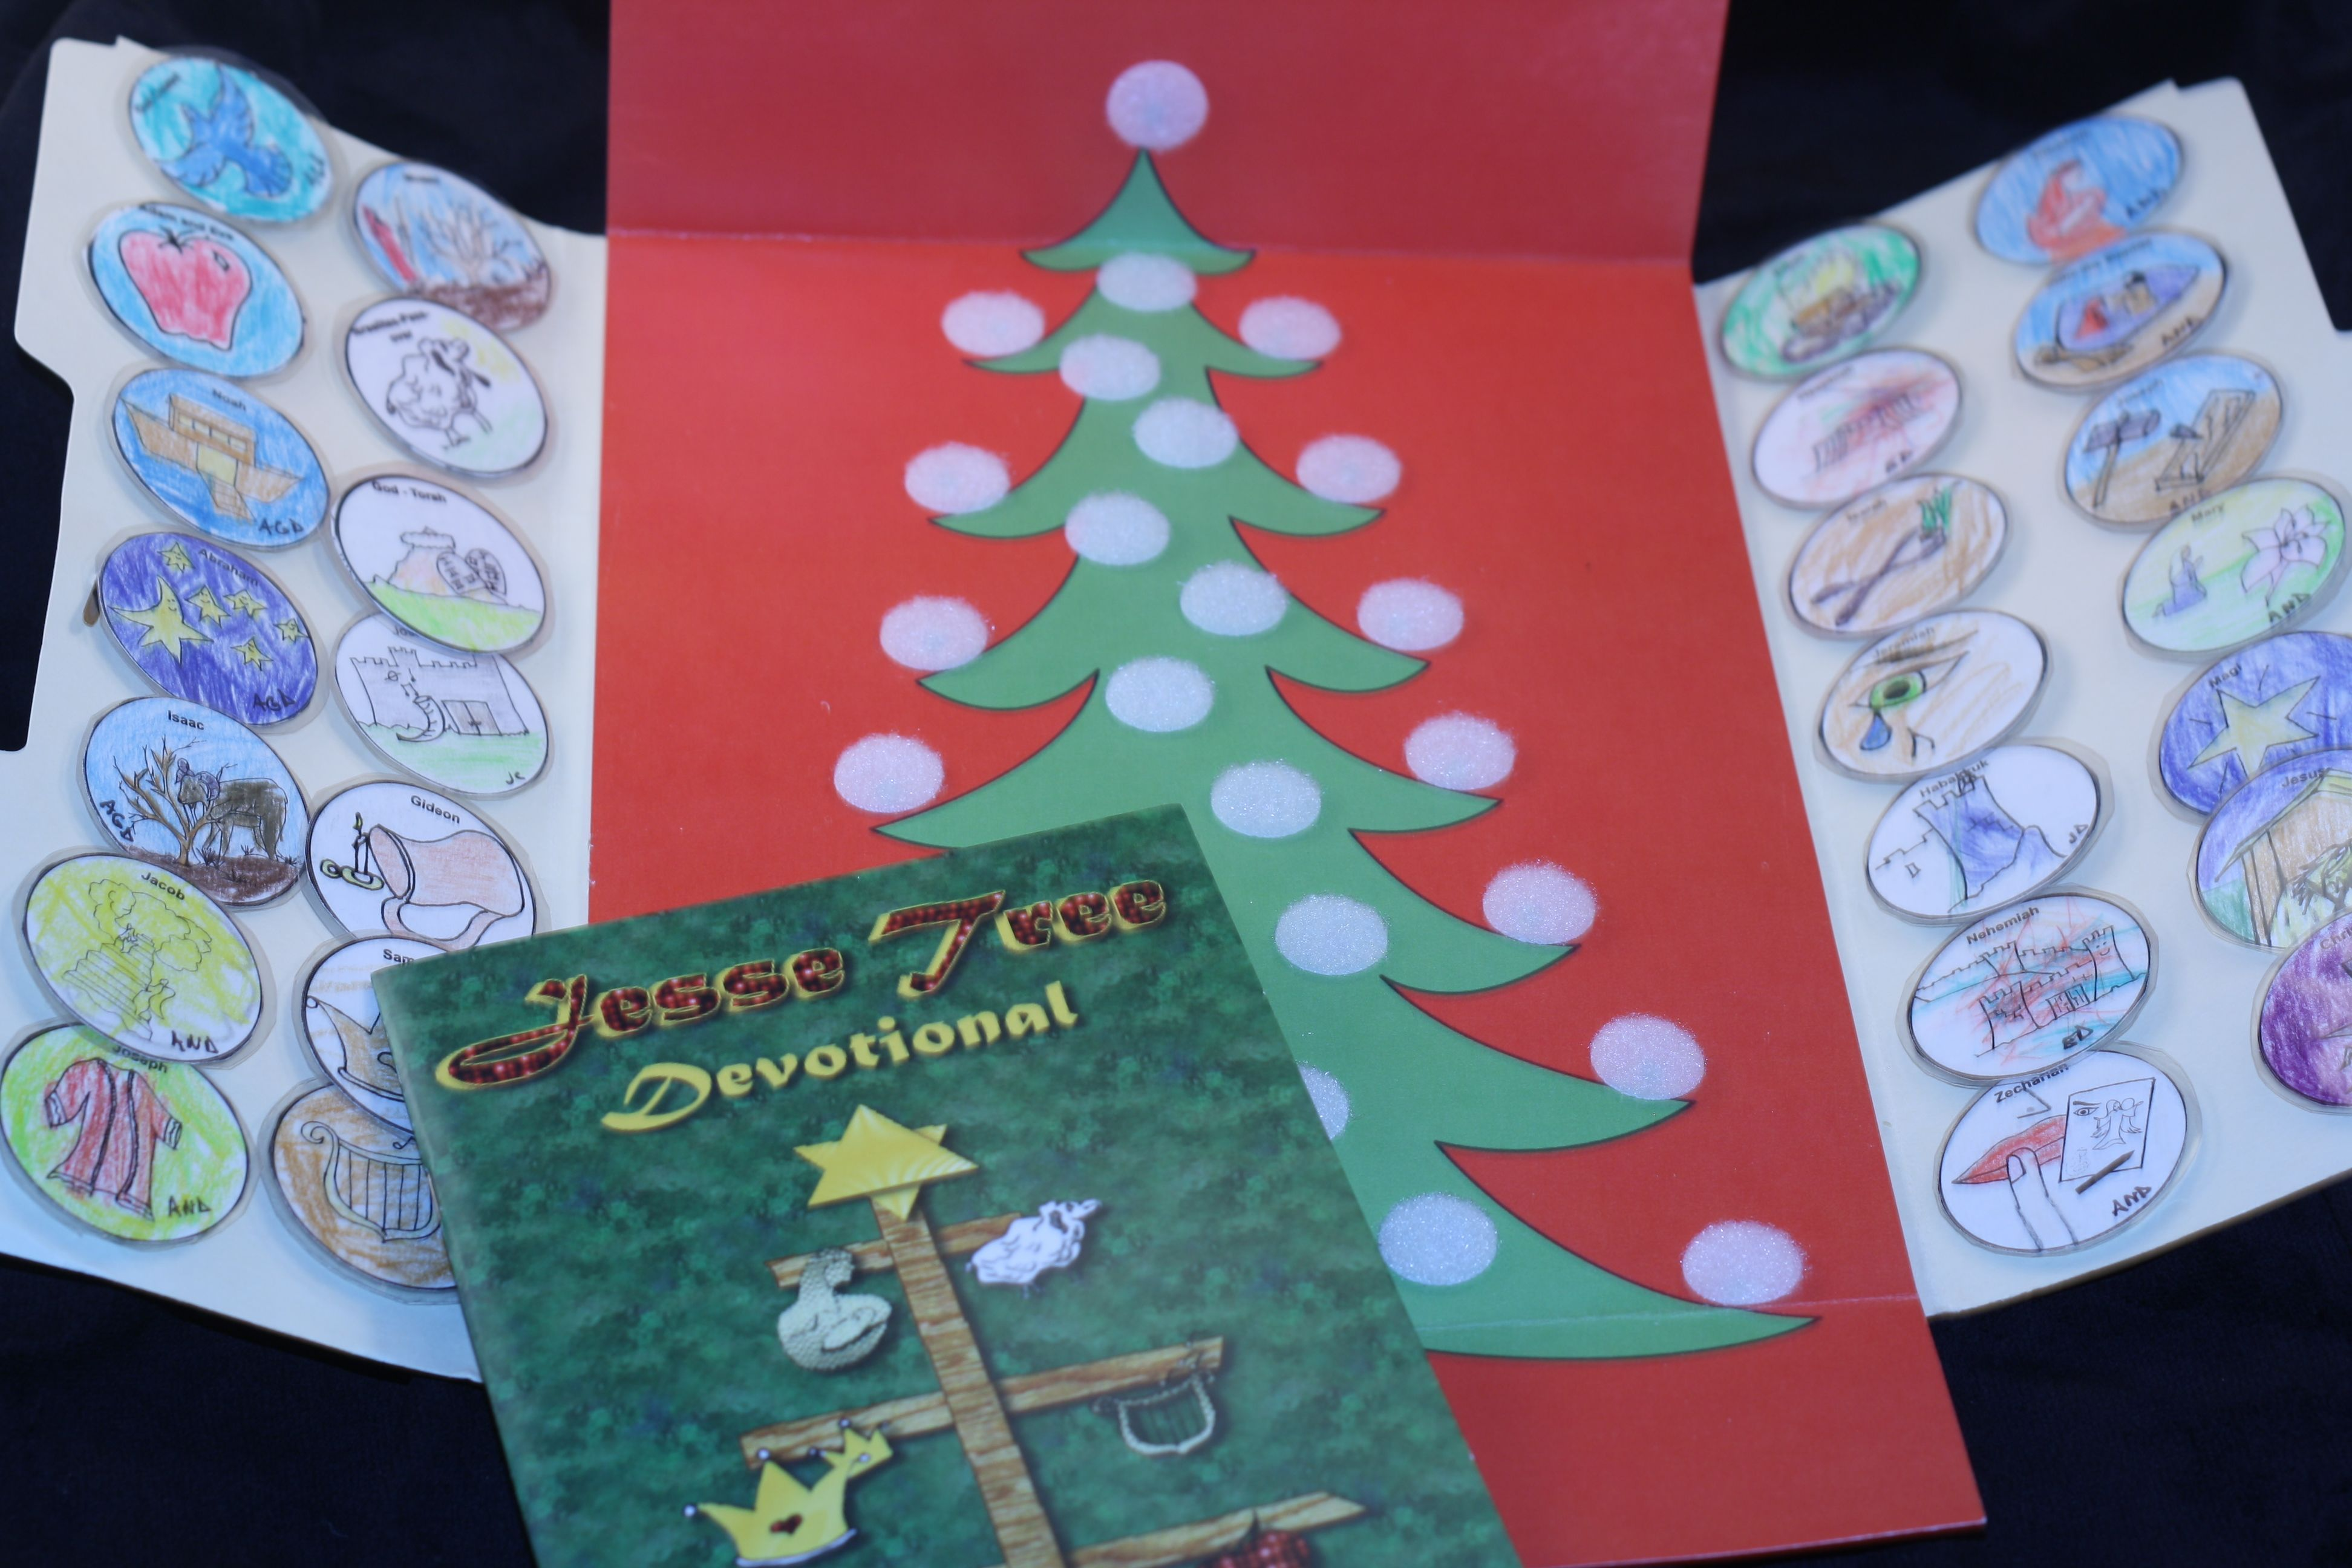 Jesse Tree Devotional Lapbook